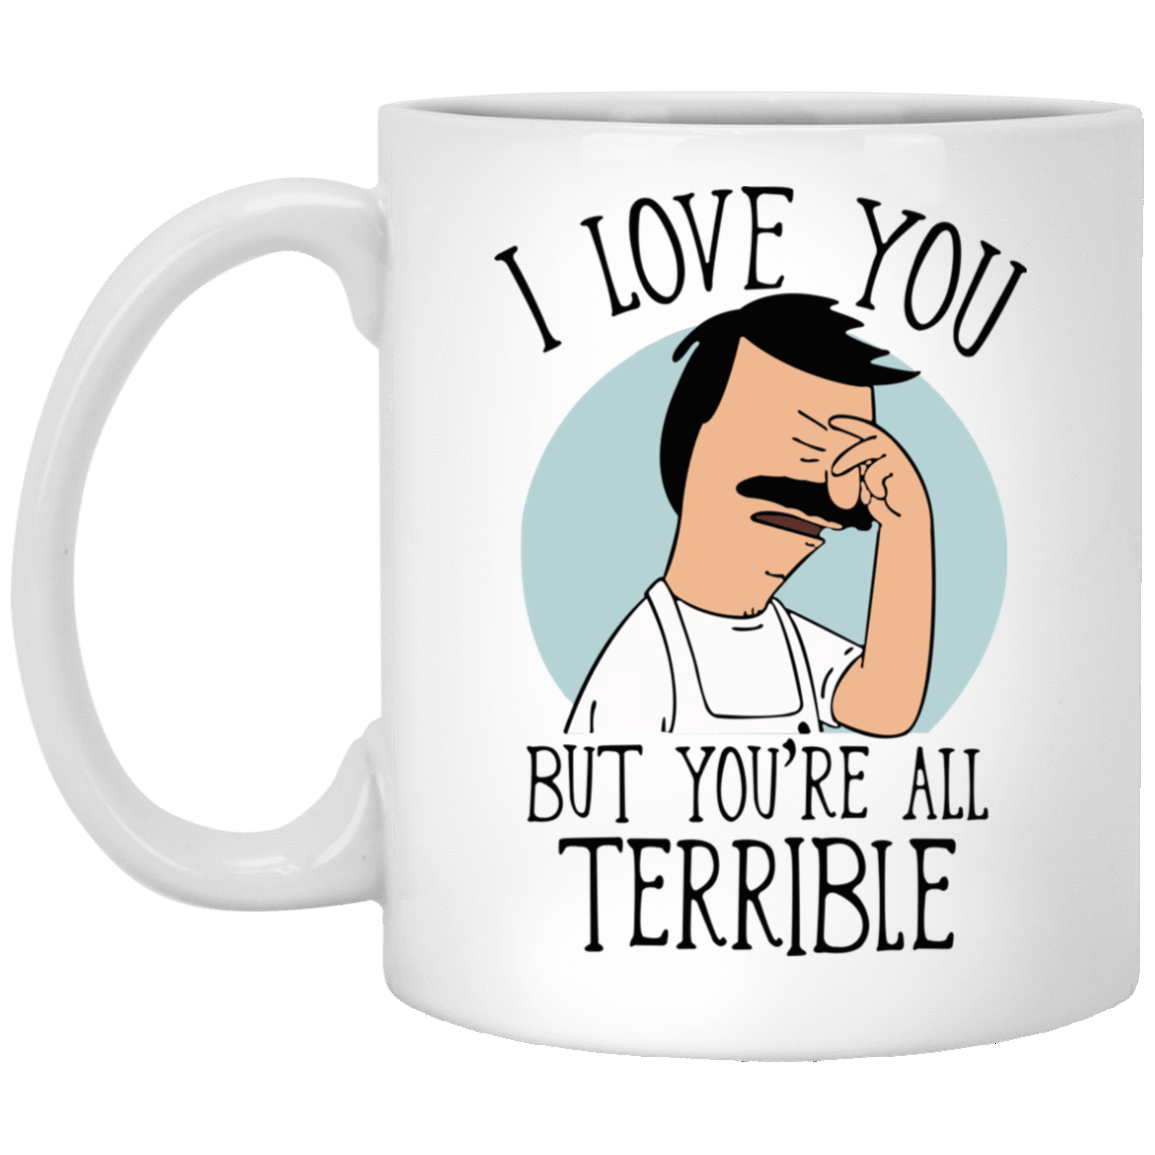 Bob's Burgers: I Love You But You're All Terrible Mug 1005-9786-72789309-47417 - Tee Ript